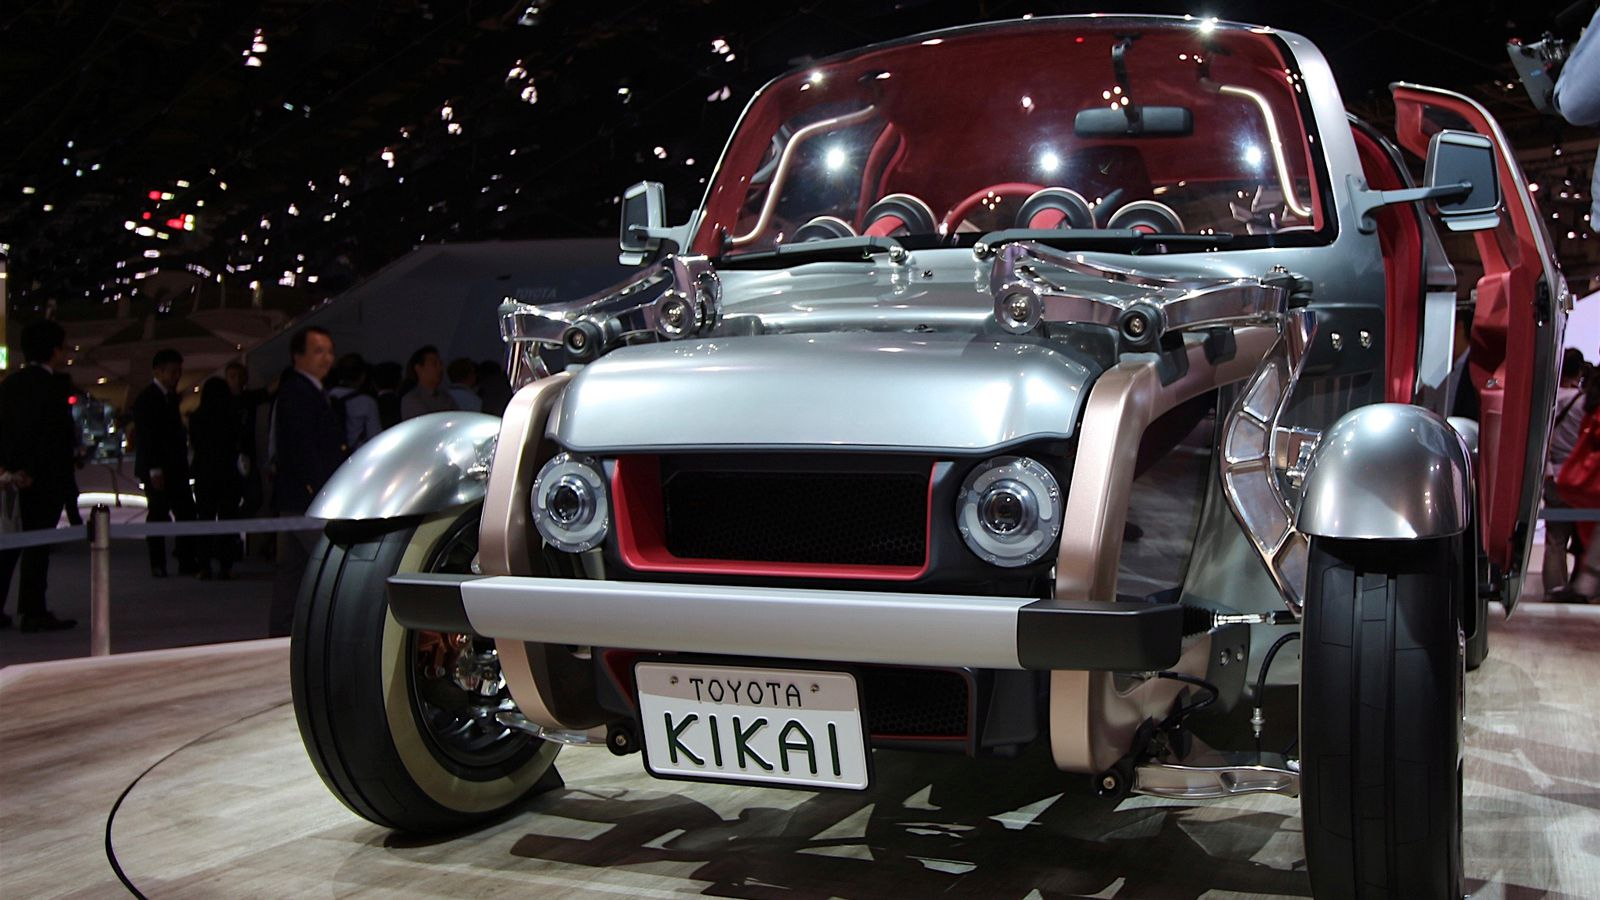 Toyota's radical Kikai concept is the anti-connected car